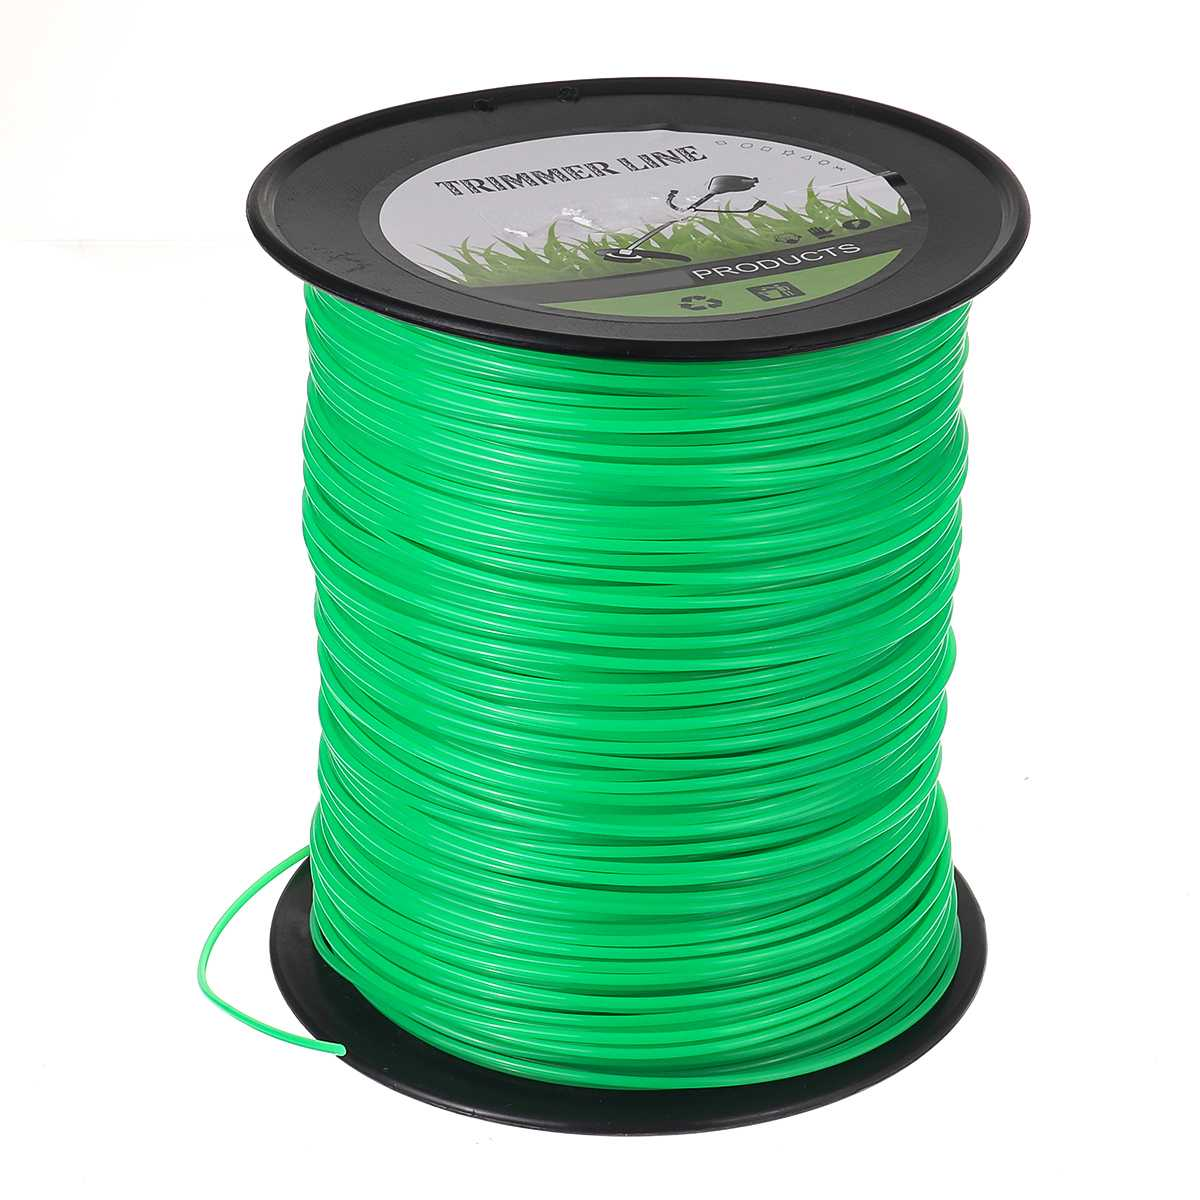 Rope Long Trimmer 2 Head Line Trimmer Round Grass Mowing Nylon 4mm Nylon 370m Roll Grass Strimmer Round Line Rope Brushcutter